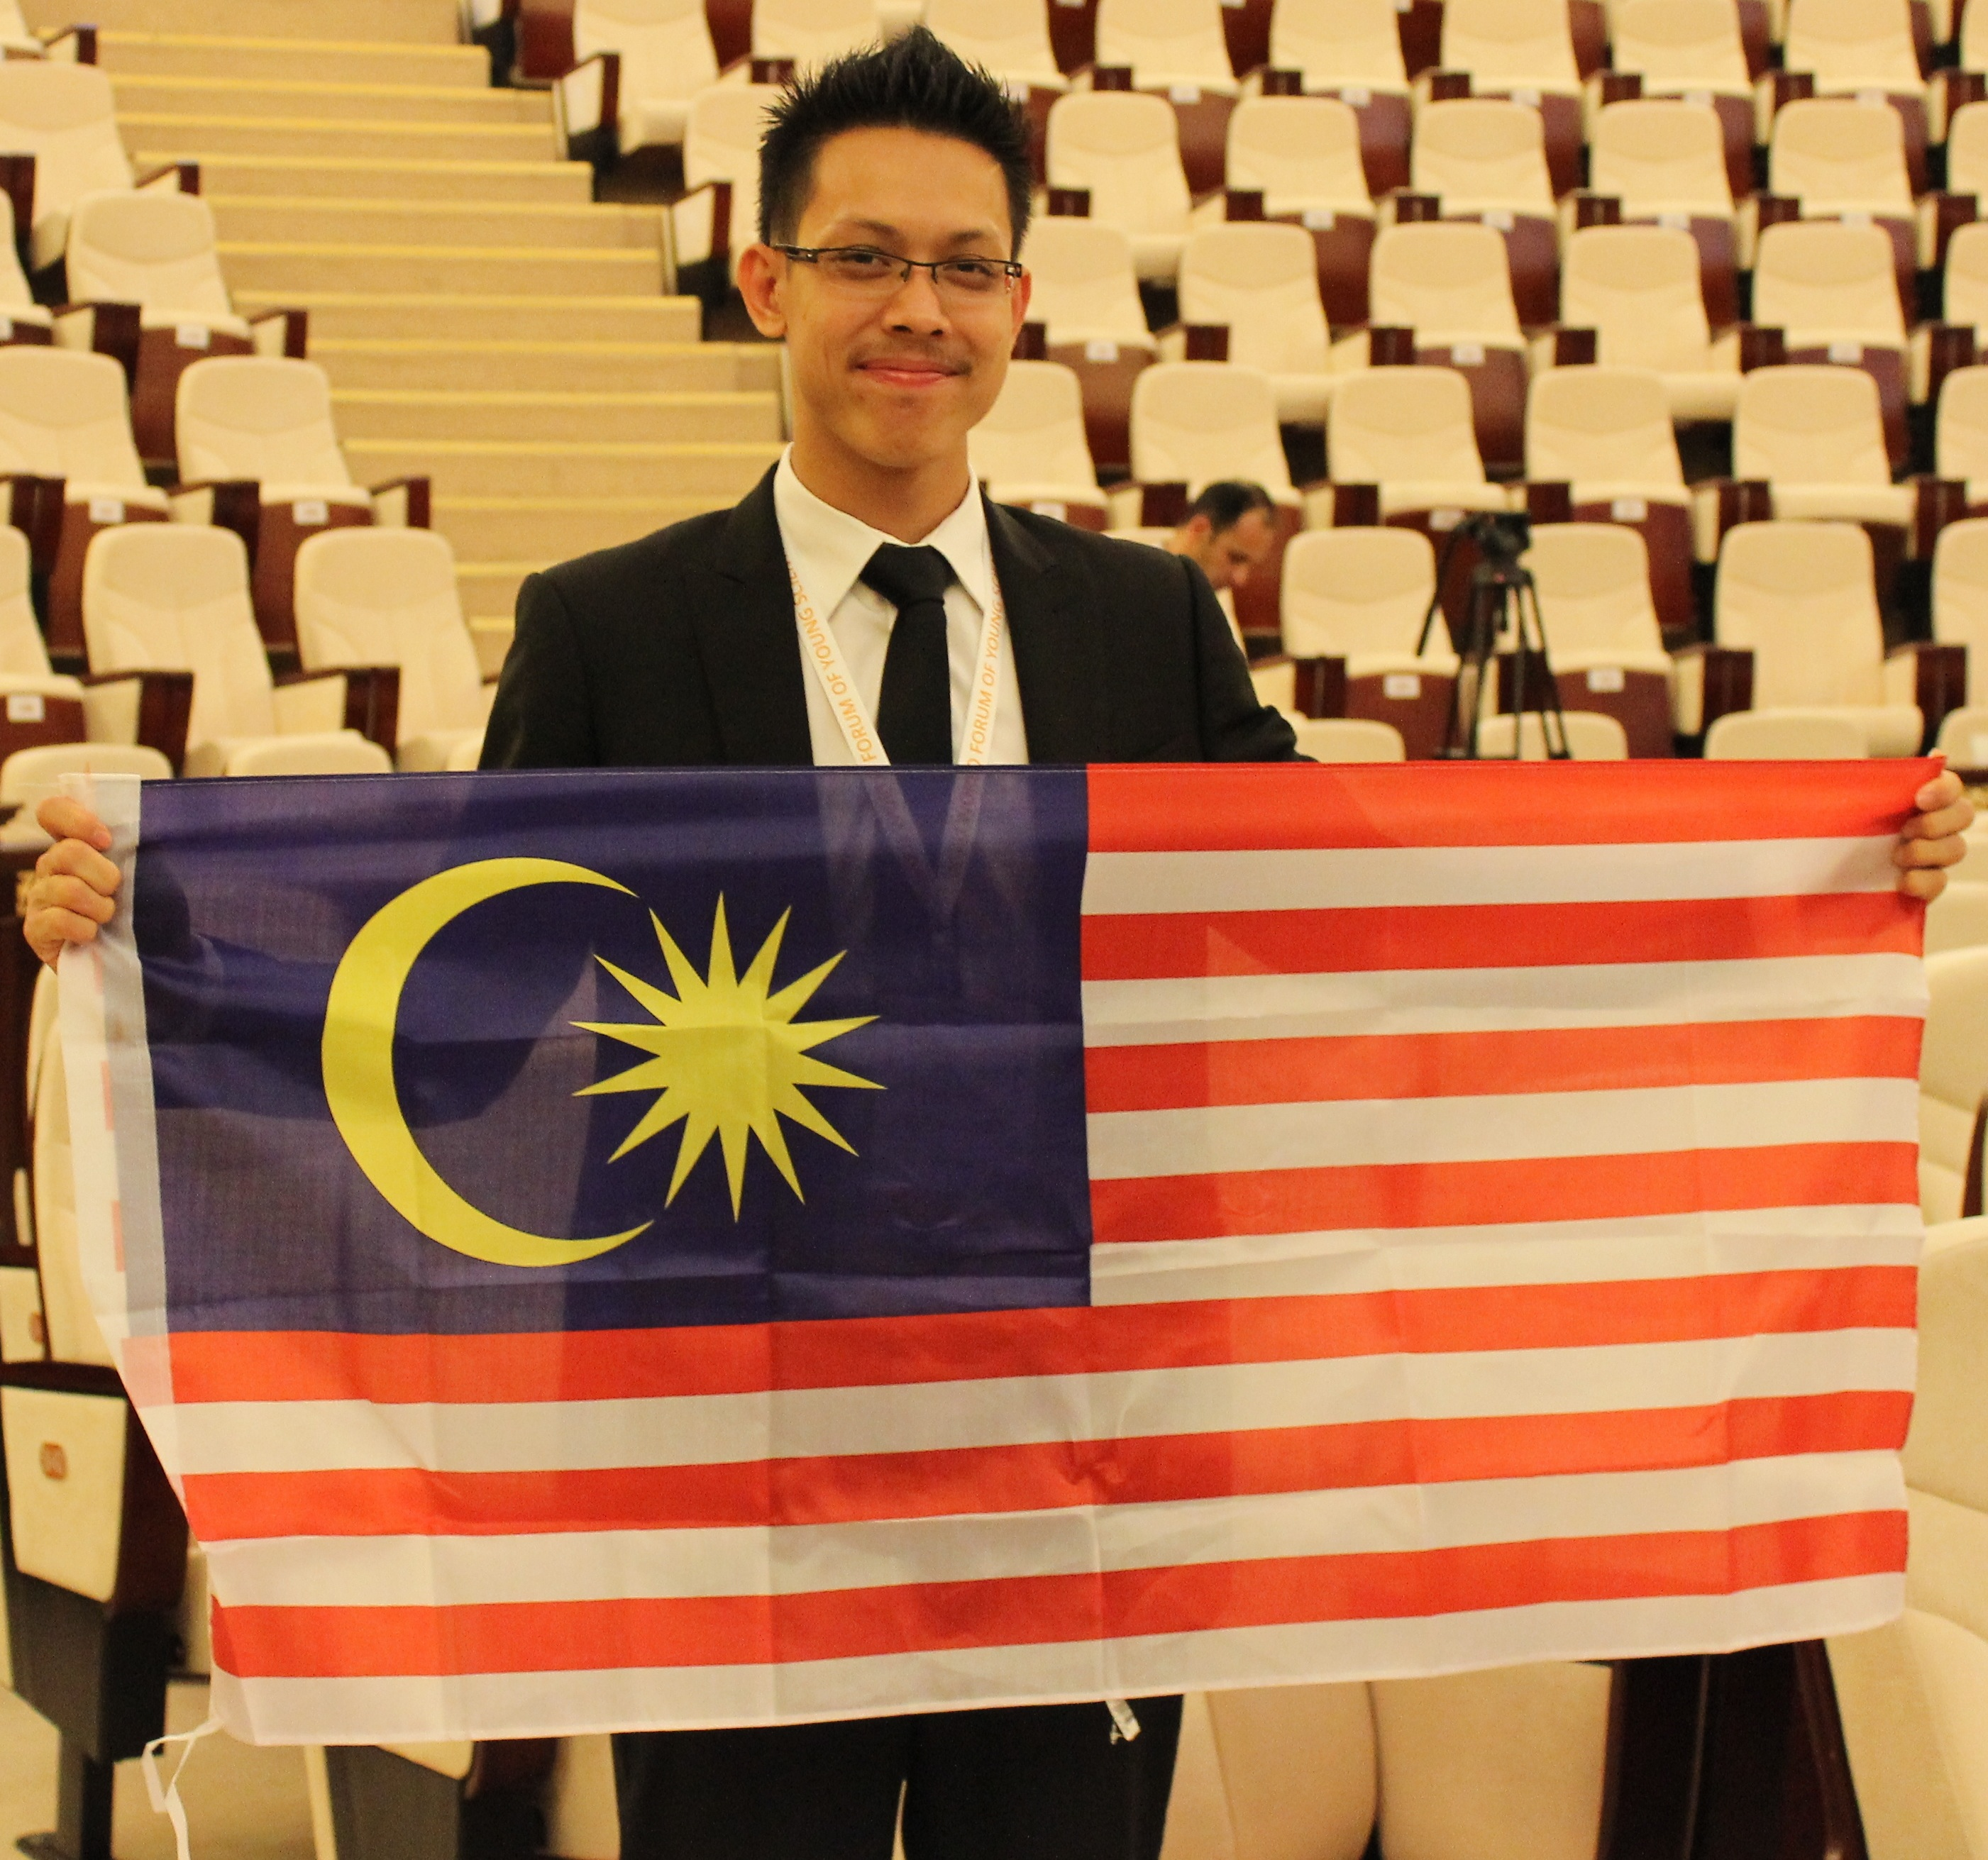 Chuck Chuan from Malaysia is OpportunityDesk Jan. 2015 Young Person of the Month